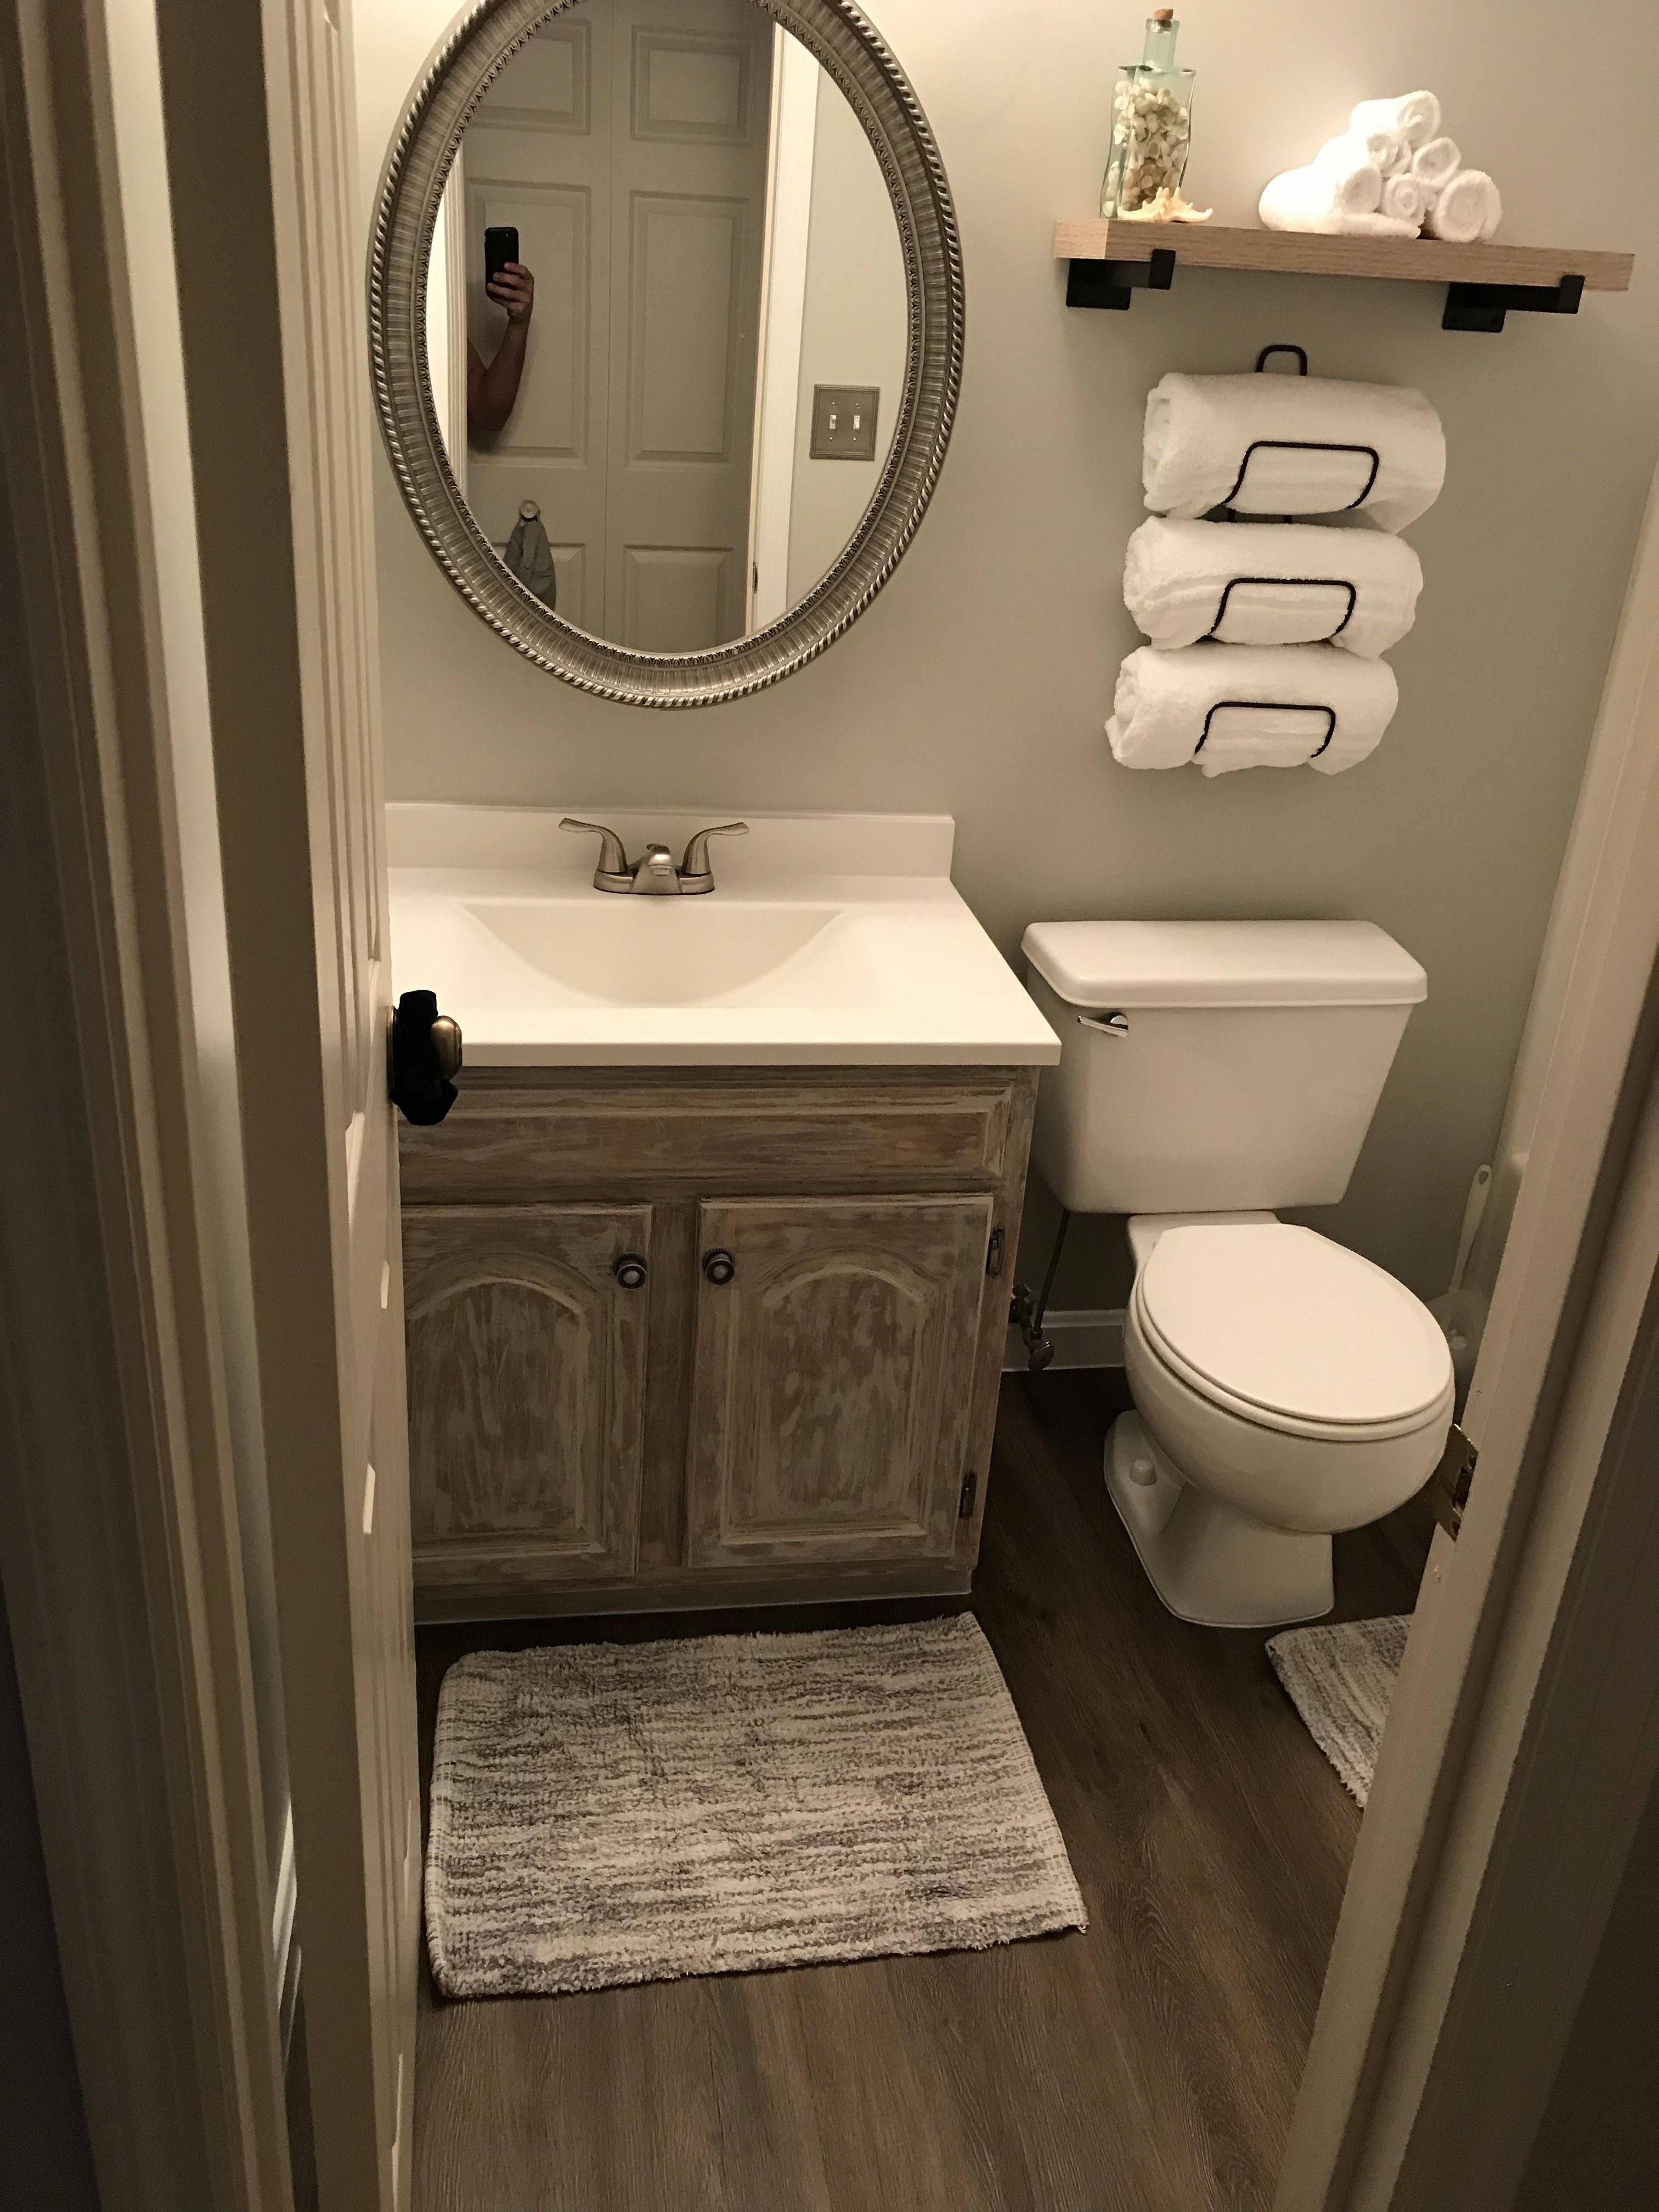 Bathroom Remodel Under 400 Old Oak Cabinet Refinished With Mud Paint And Sanded Sherwin William Small Bathroom Decor Office Bathroom Design Bathrooms Remodel